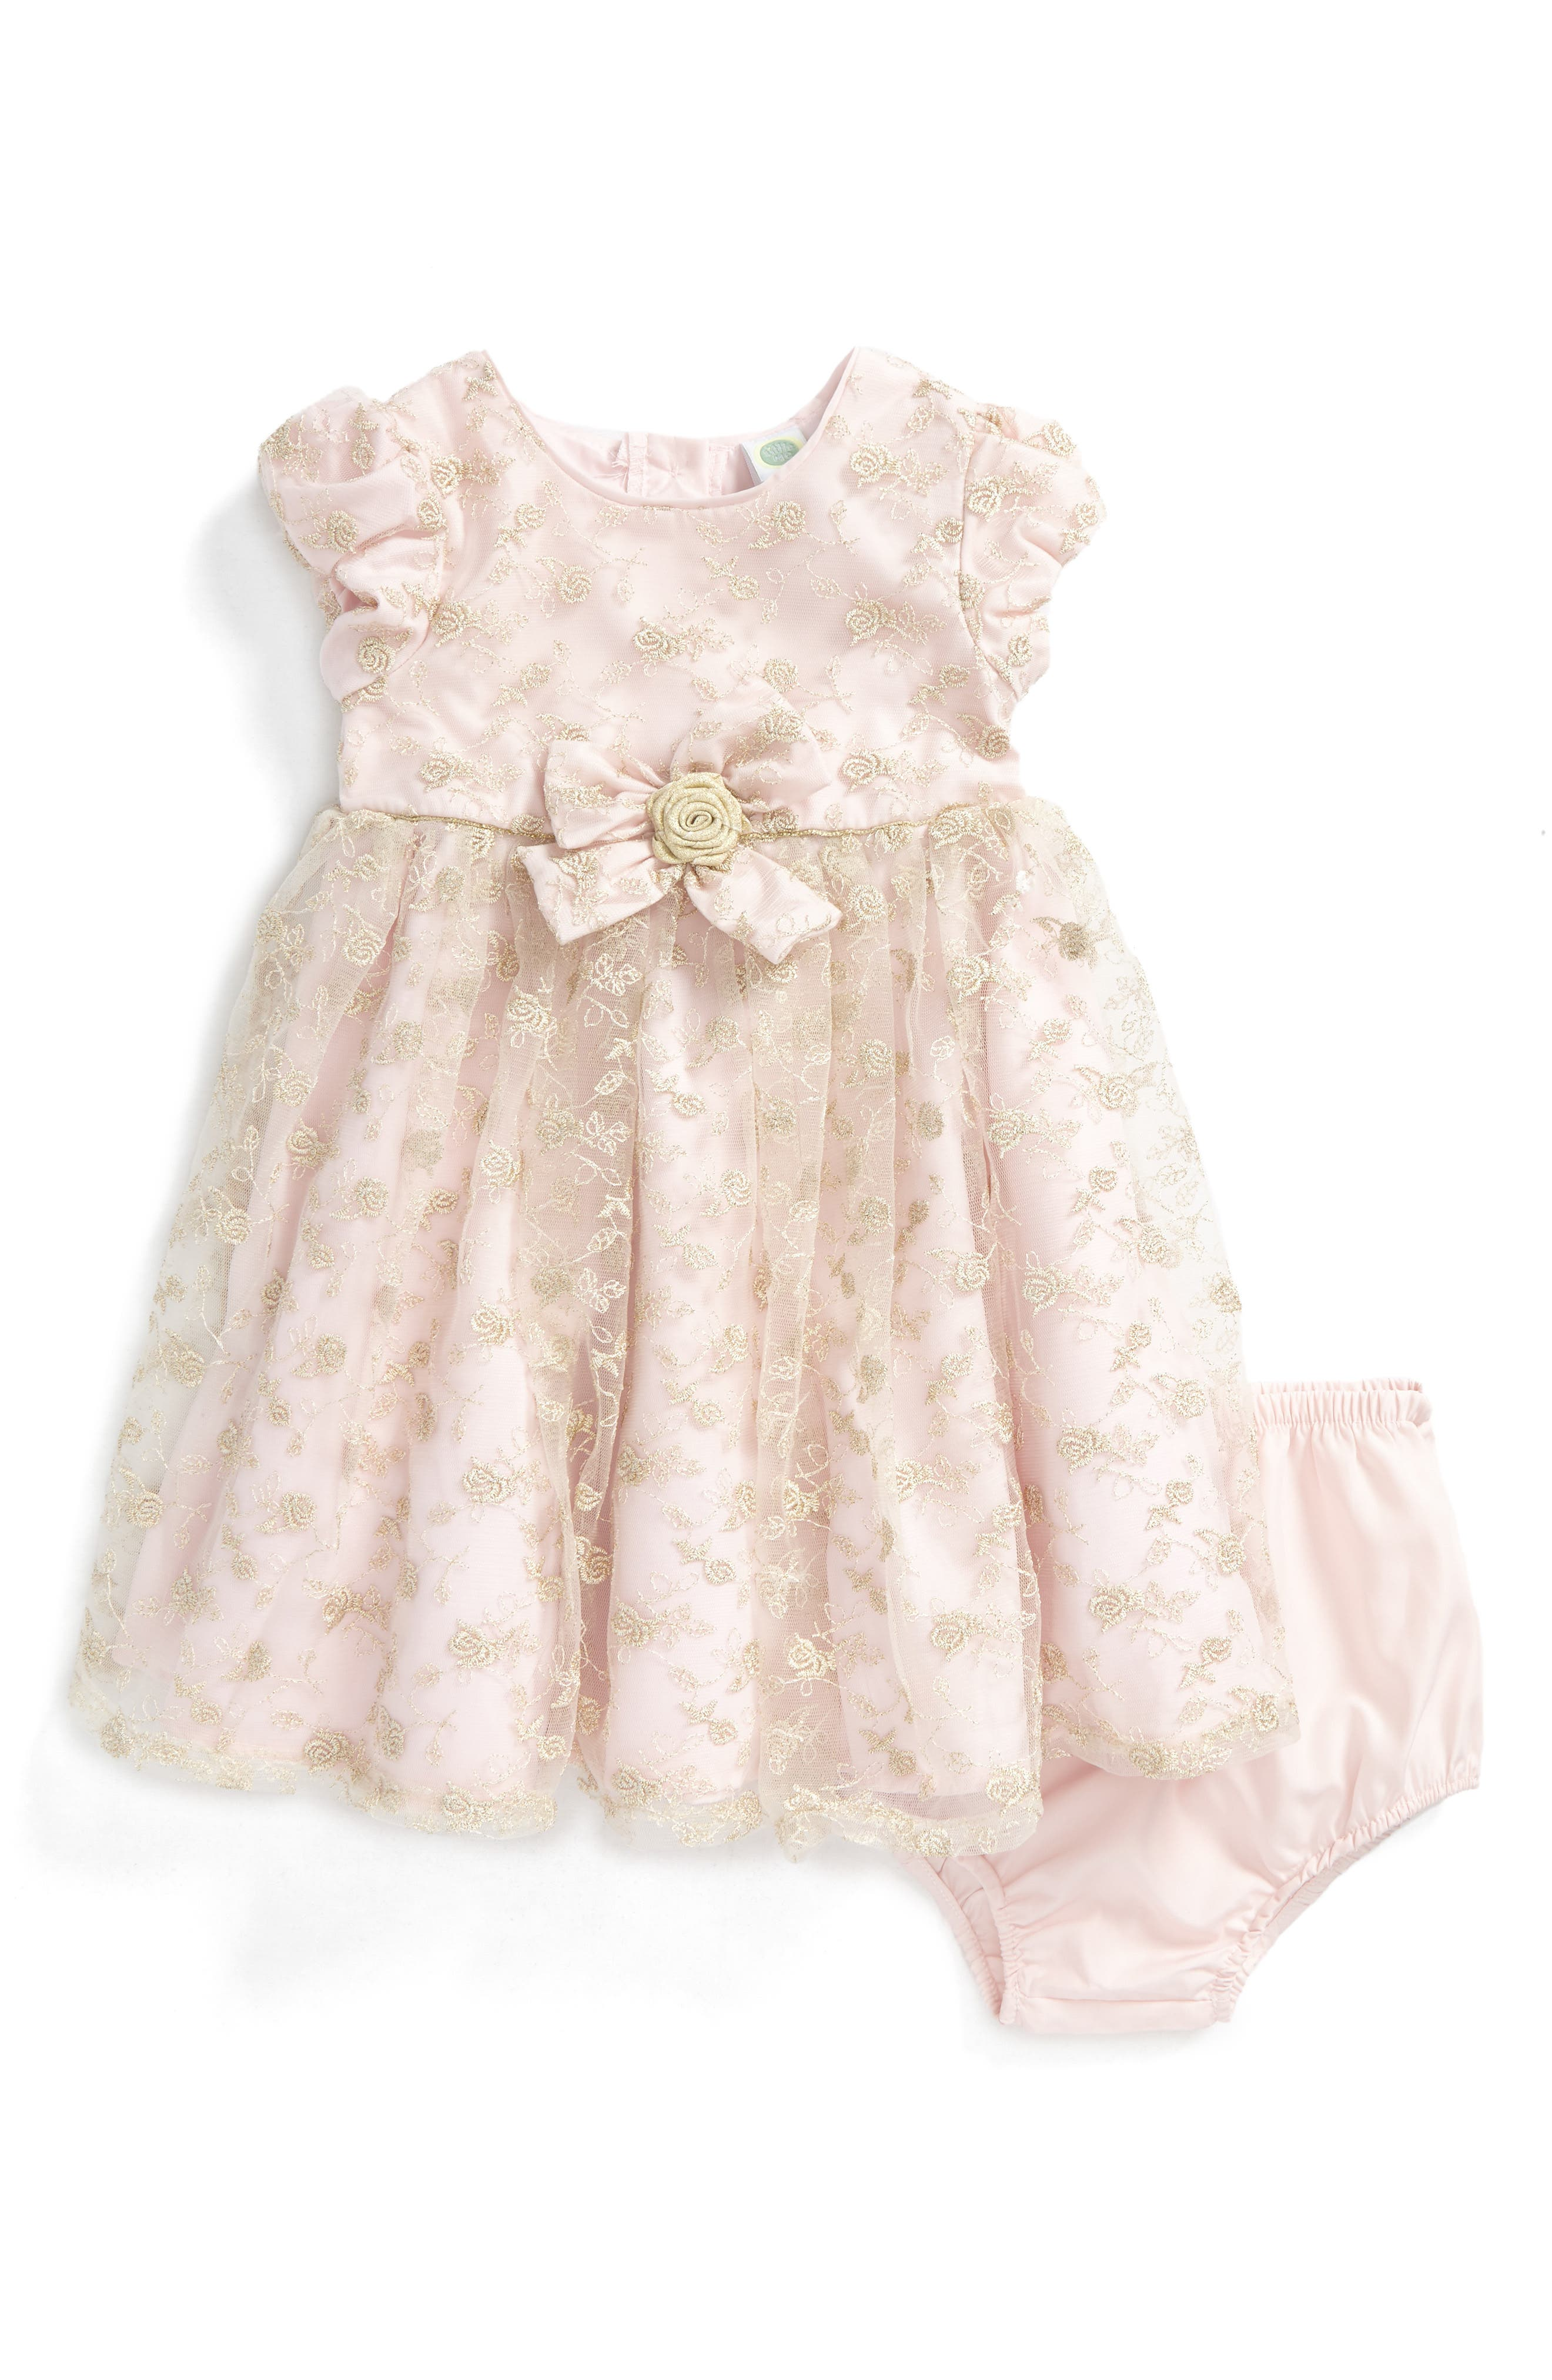 Main Image - Little Me Floral Embroidery Dress (Baby Girls)